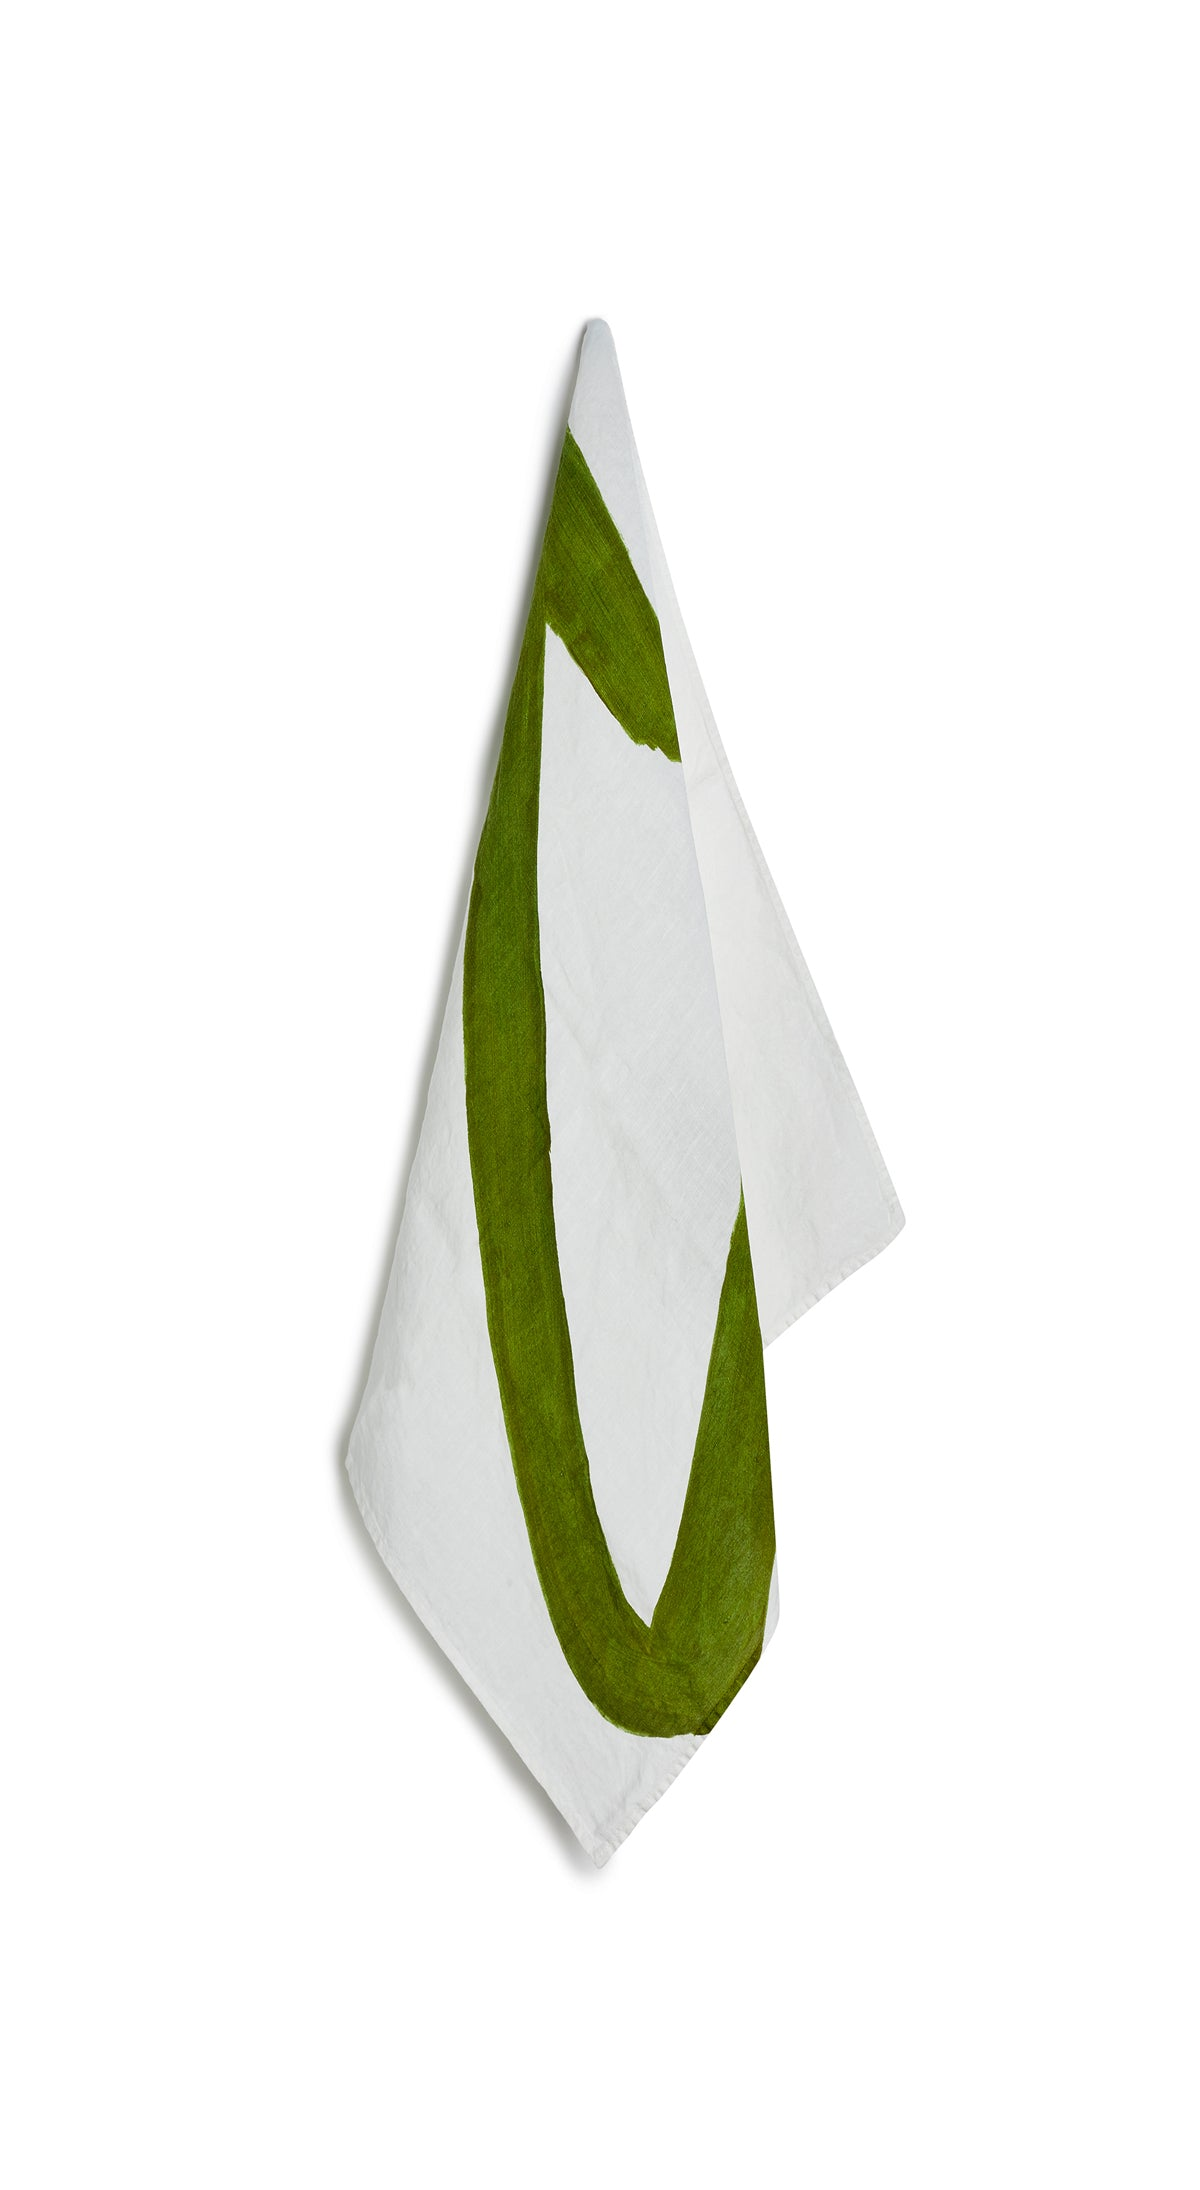 Alphabet Napkin 'C' in Avocado Green